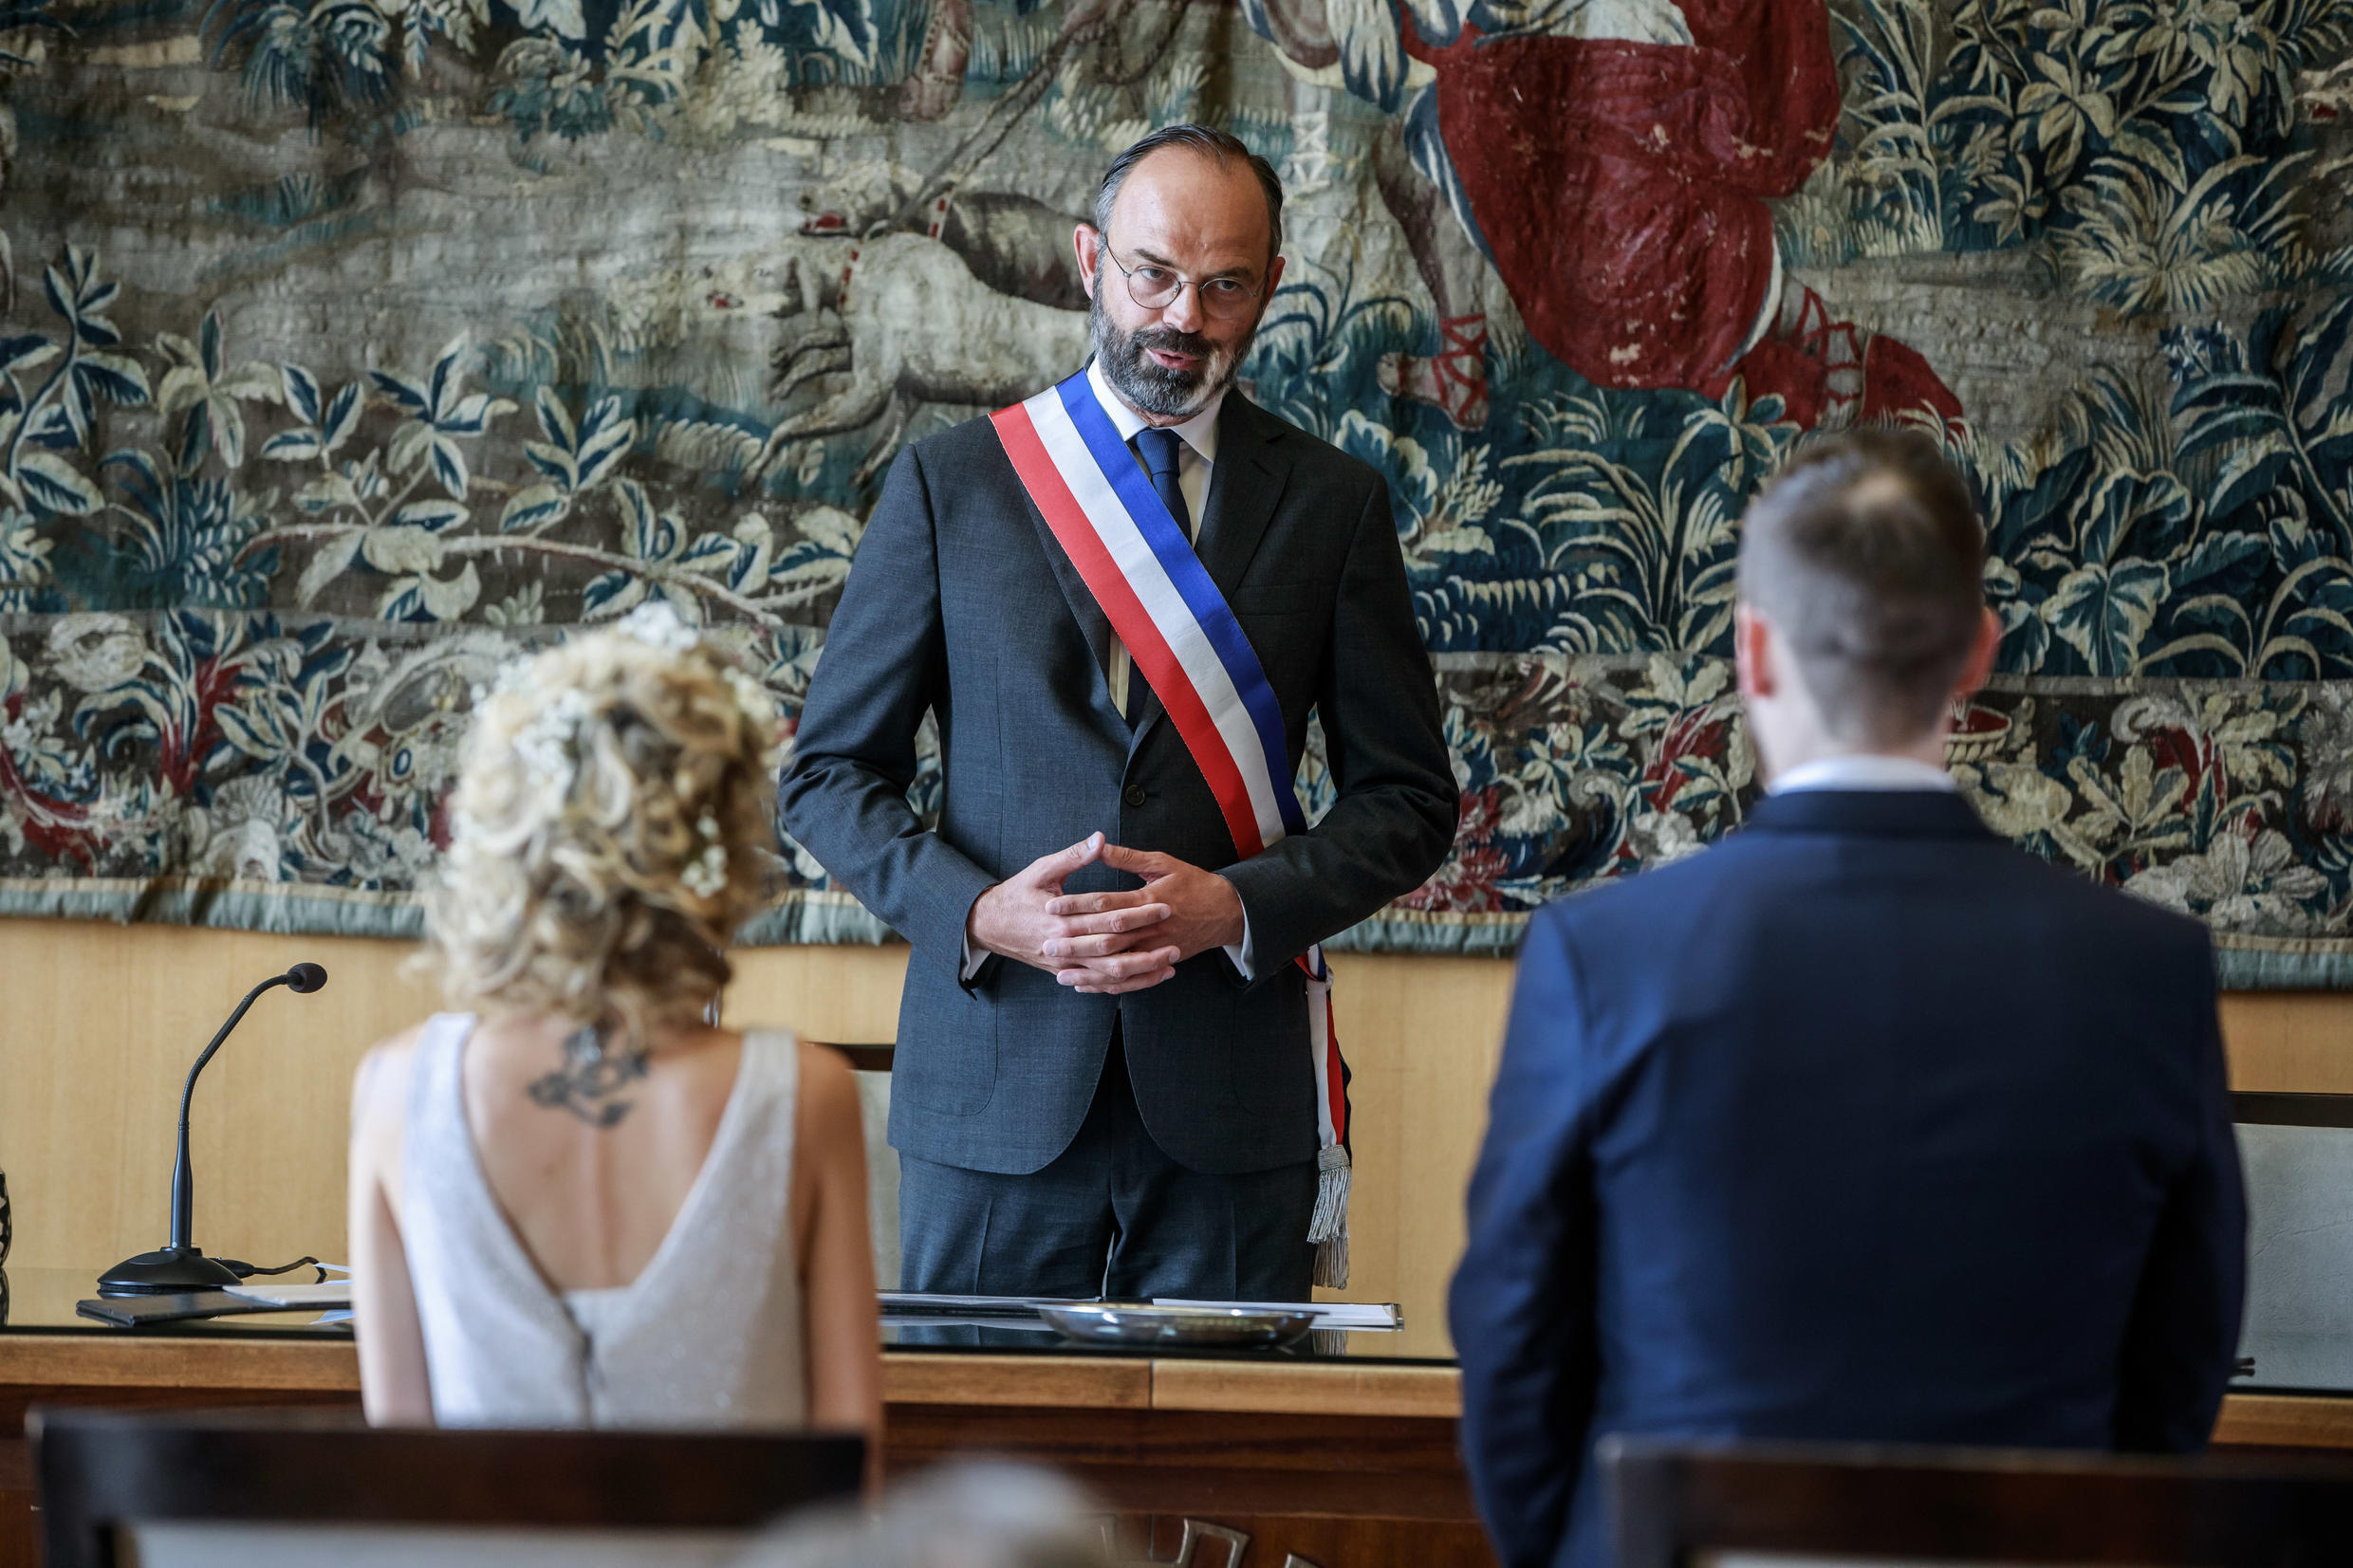 French Prime Minister and candidate for Le Havre city hall Edouard Philippe (C) celebrates a wedding in Le Havre, Normandy, on June 20, 2020, during a campaign visit ahead of the second round of France's municipal elections to be held on 28 June 2020.